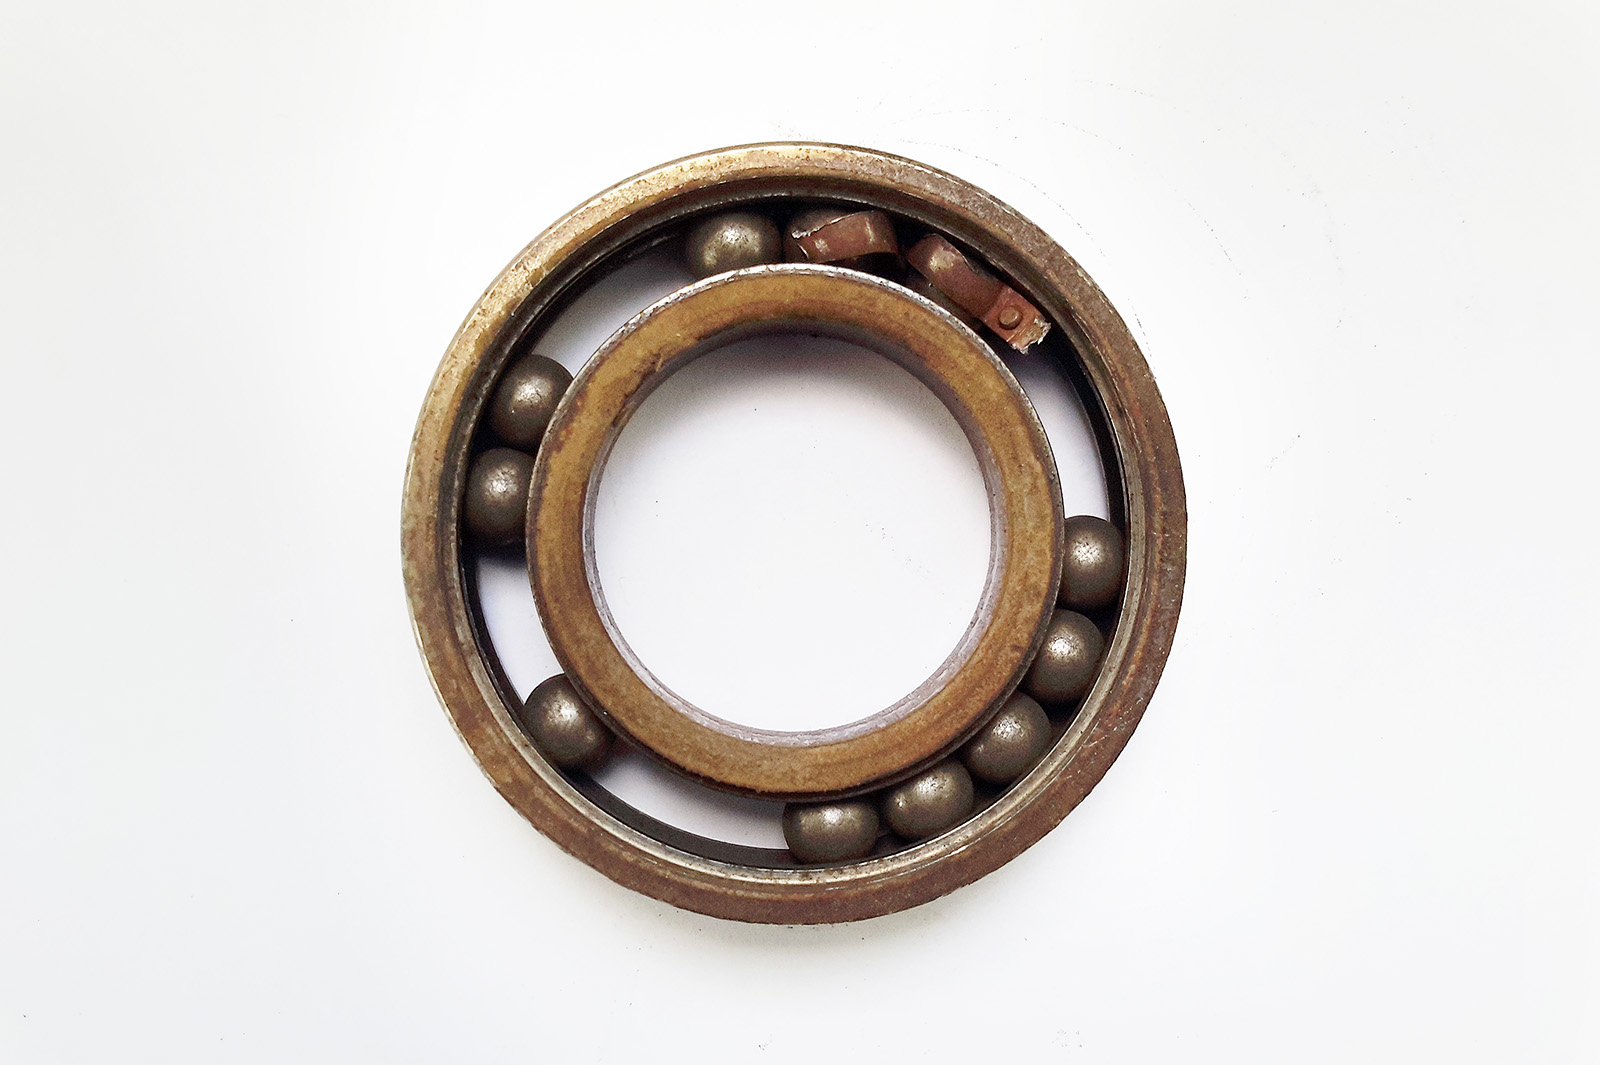 http://trs-motors.ru/wp-content/uploads/2015/10/Dodge_Journey_Right_Bearing_05.jpg